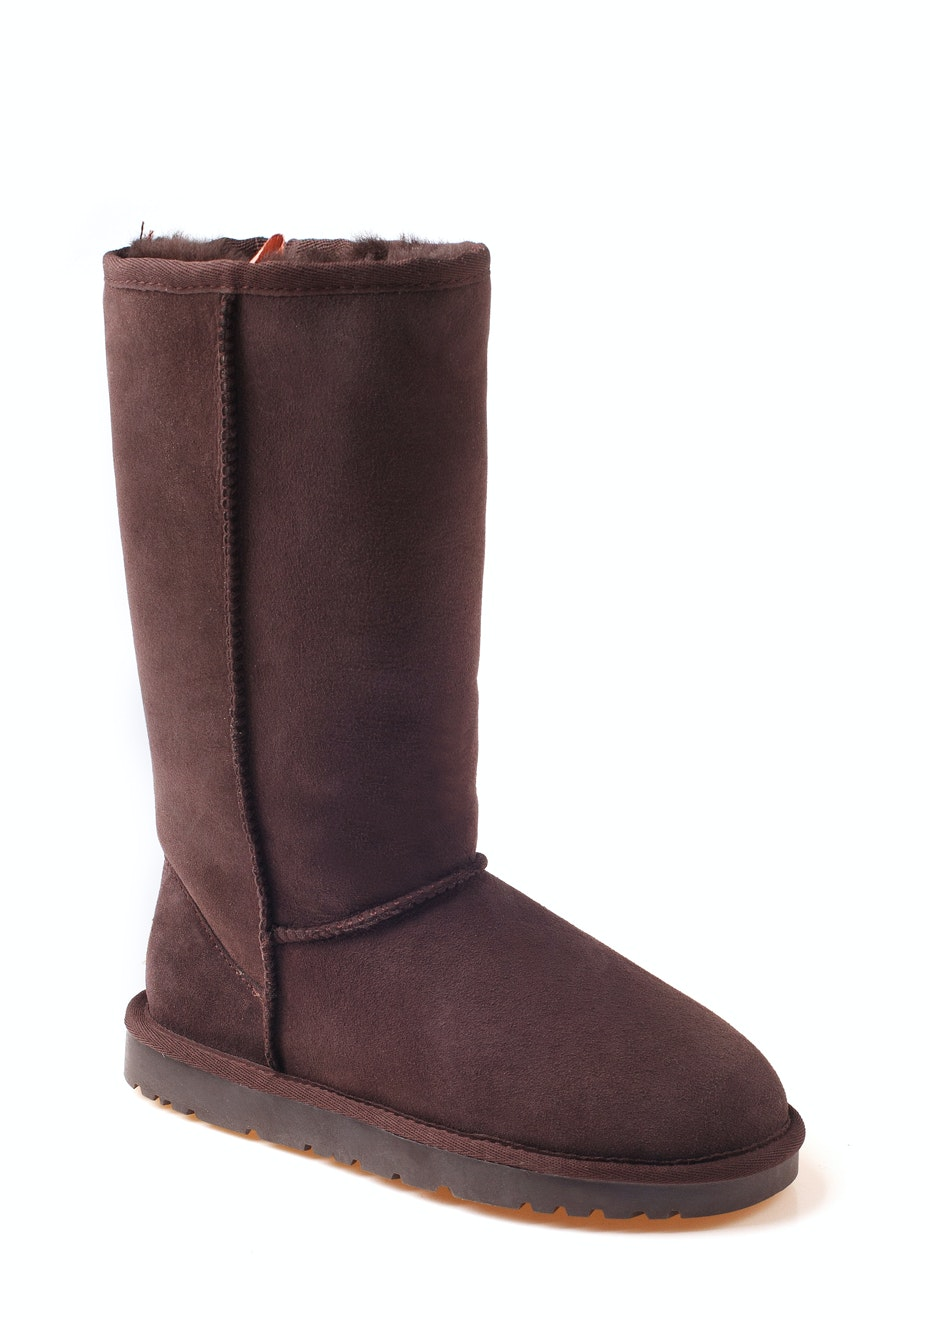 Ozwear - Classic Ugg Long Boots - Chocolate